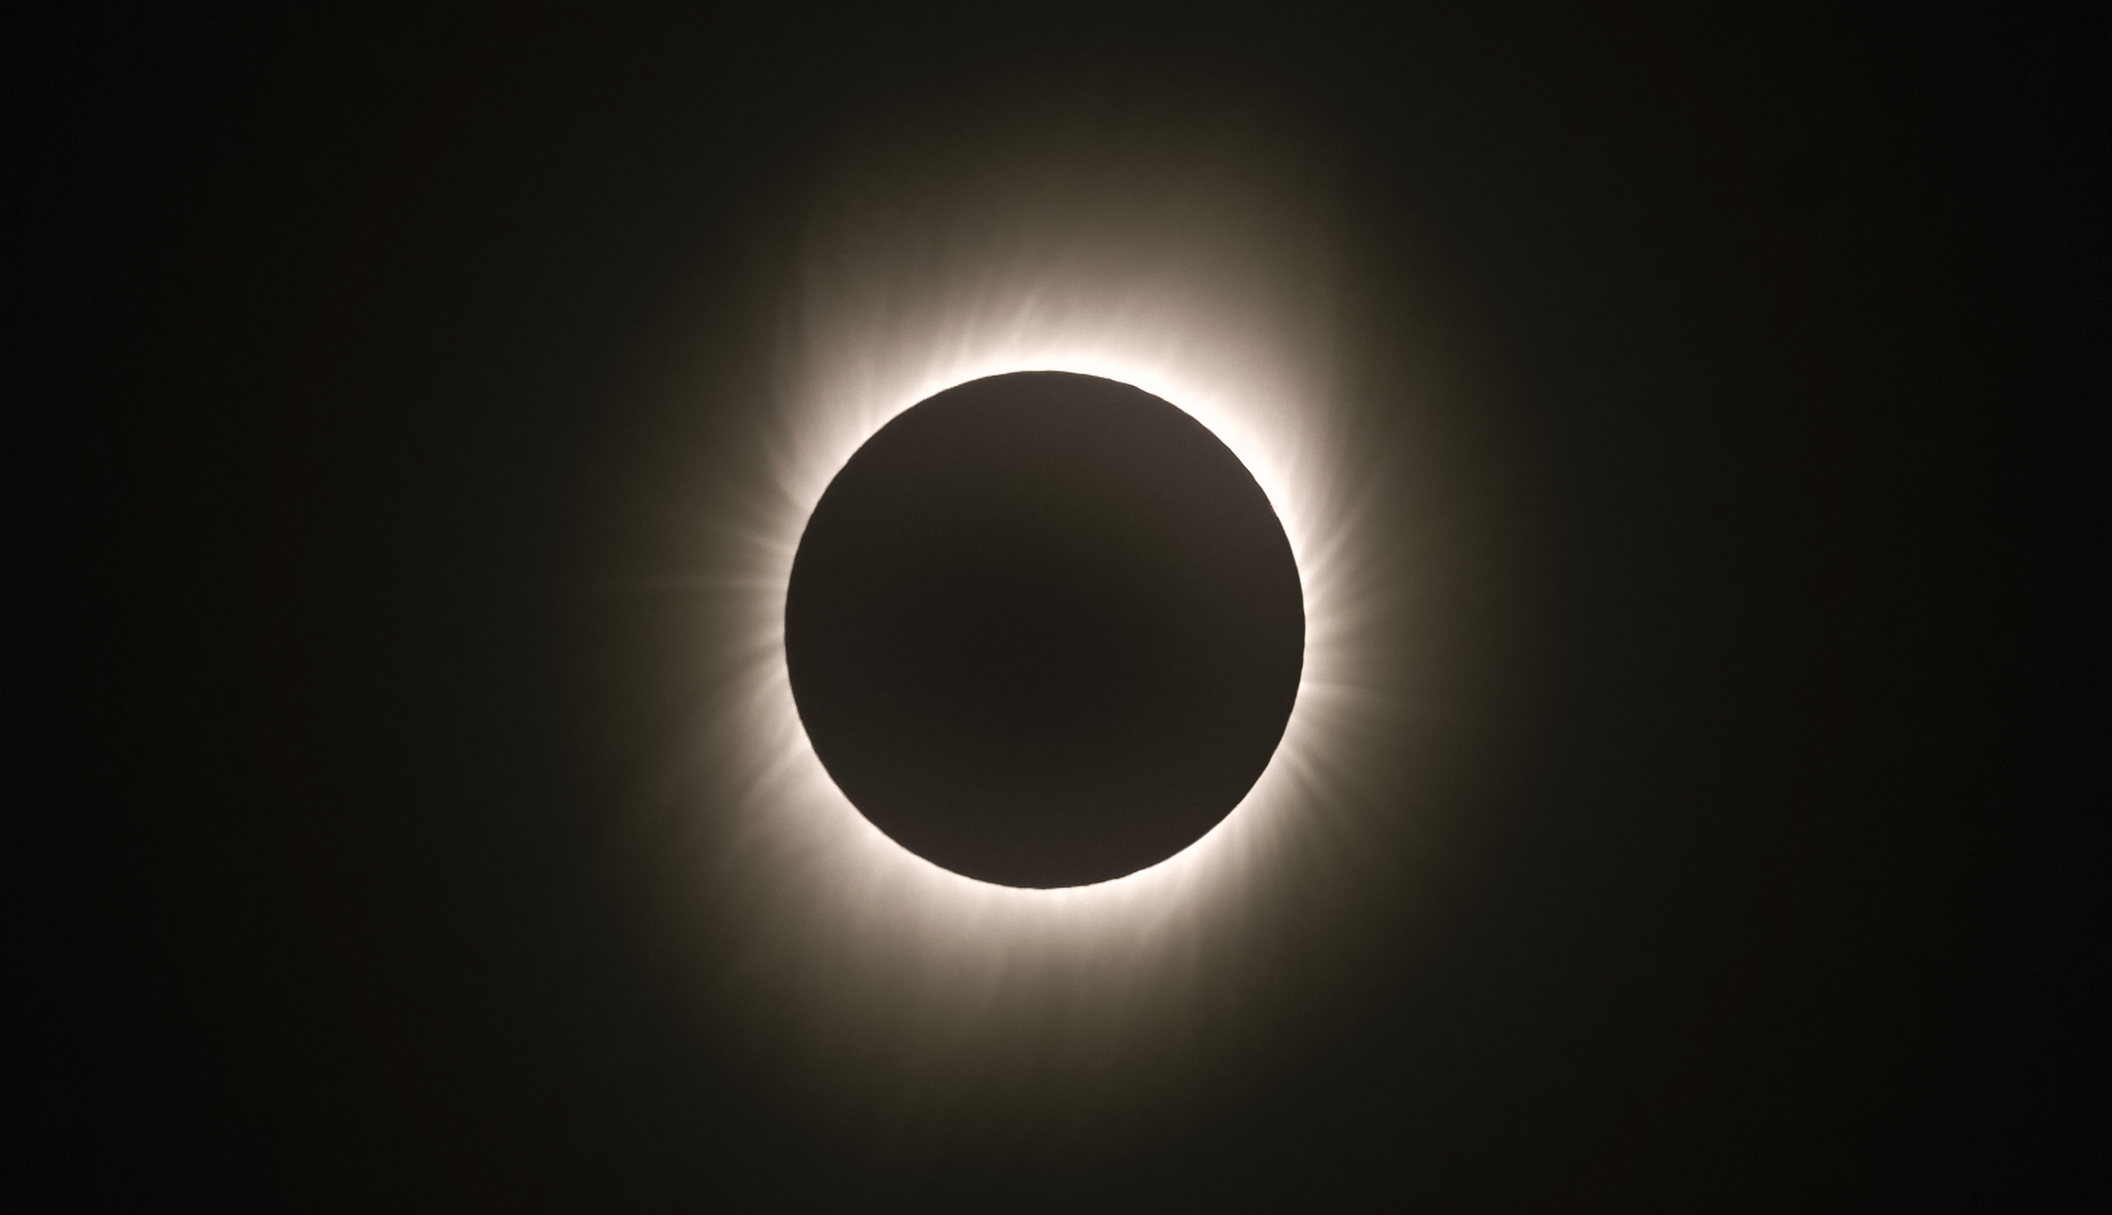 Total Eclipse of the Heart - 8/30/2017Dr. Kate's eclipse experience and some lessons for us all.